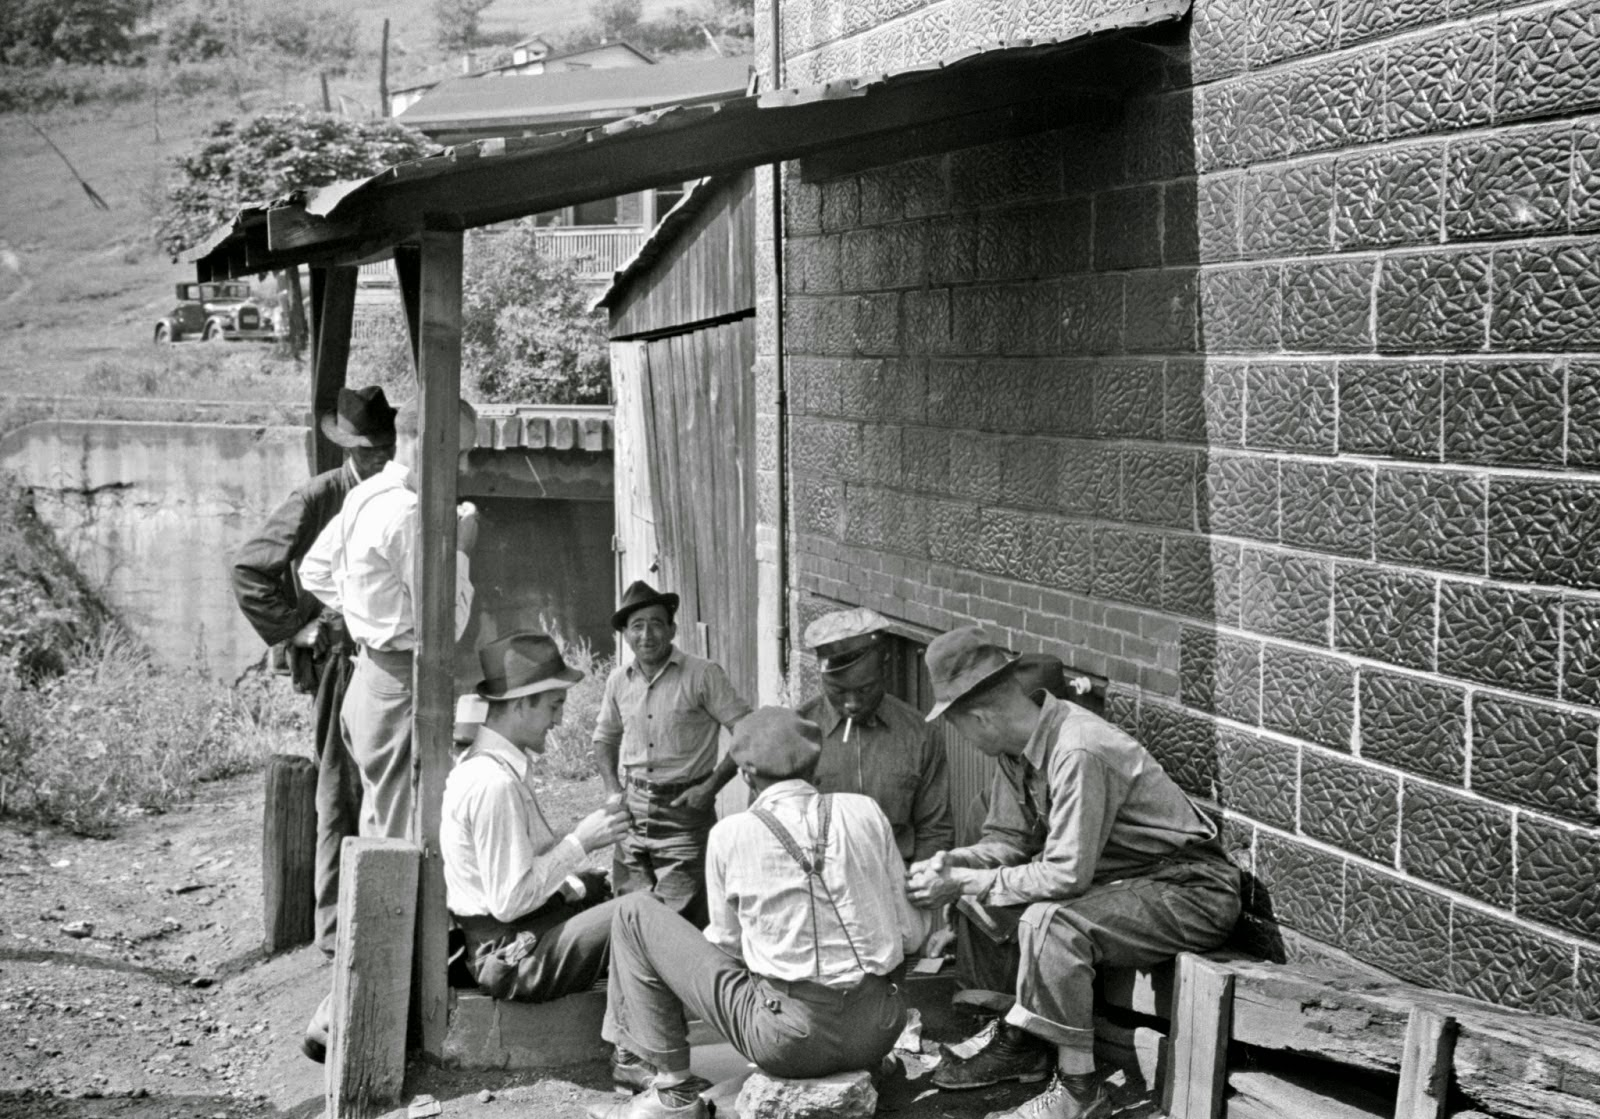 Card gambling in center of town